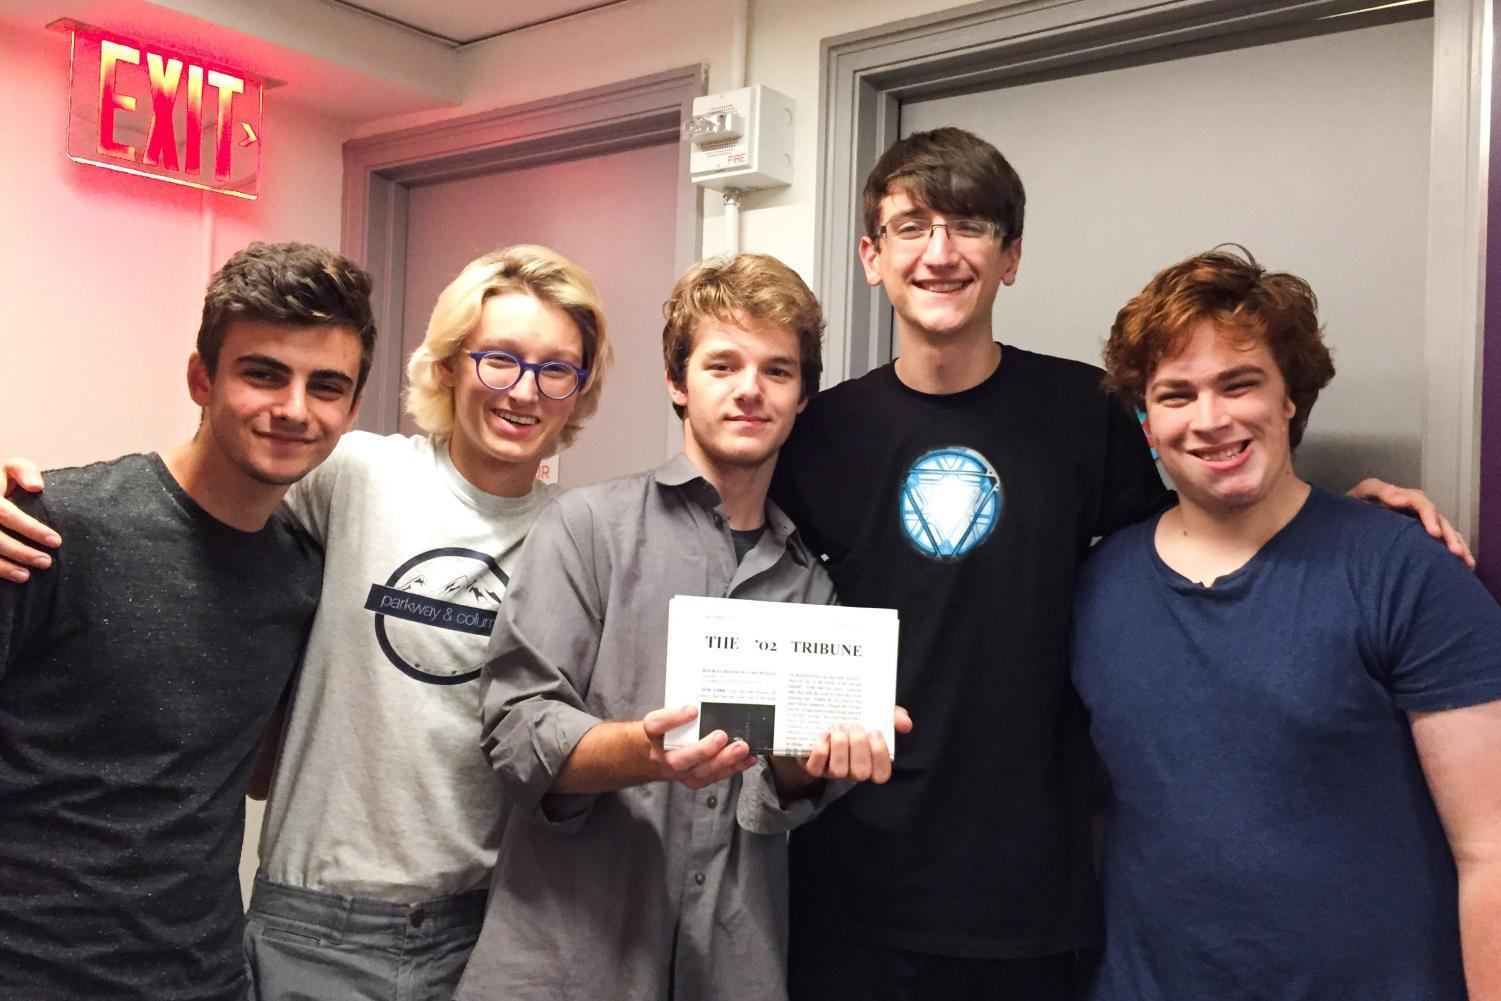 Brittany Hall residents (L to R) Nicolas Brunstein, Samuel Slocum, Gabriel Oldfield, Benjamin Florence and Joshua Ellis-Einhorn created a newsletter named the 02 Tribune which is only sent to other rooms ending in 02.